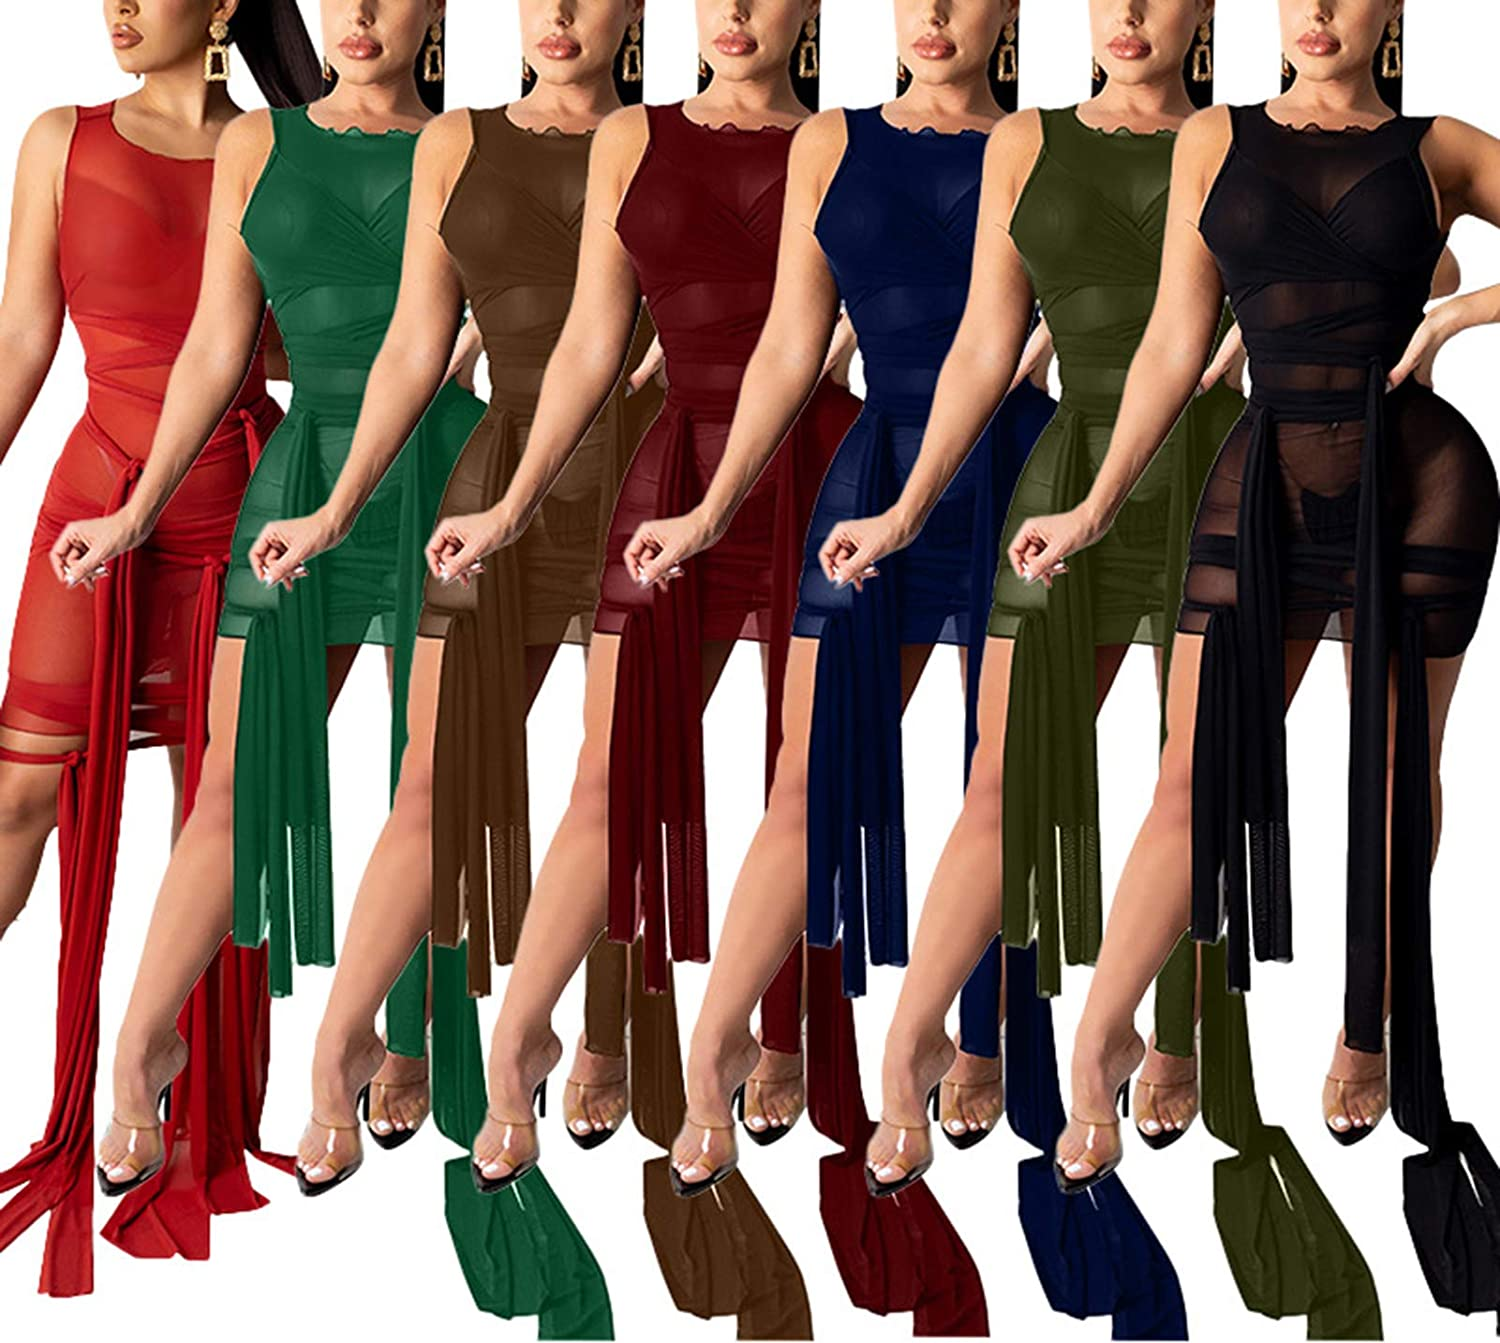 acelyn Womens Sexy Solid Color Sleeveless See Through Sheer Mesh Bandage Dress Bodycon Mini Dress Clubwear